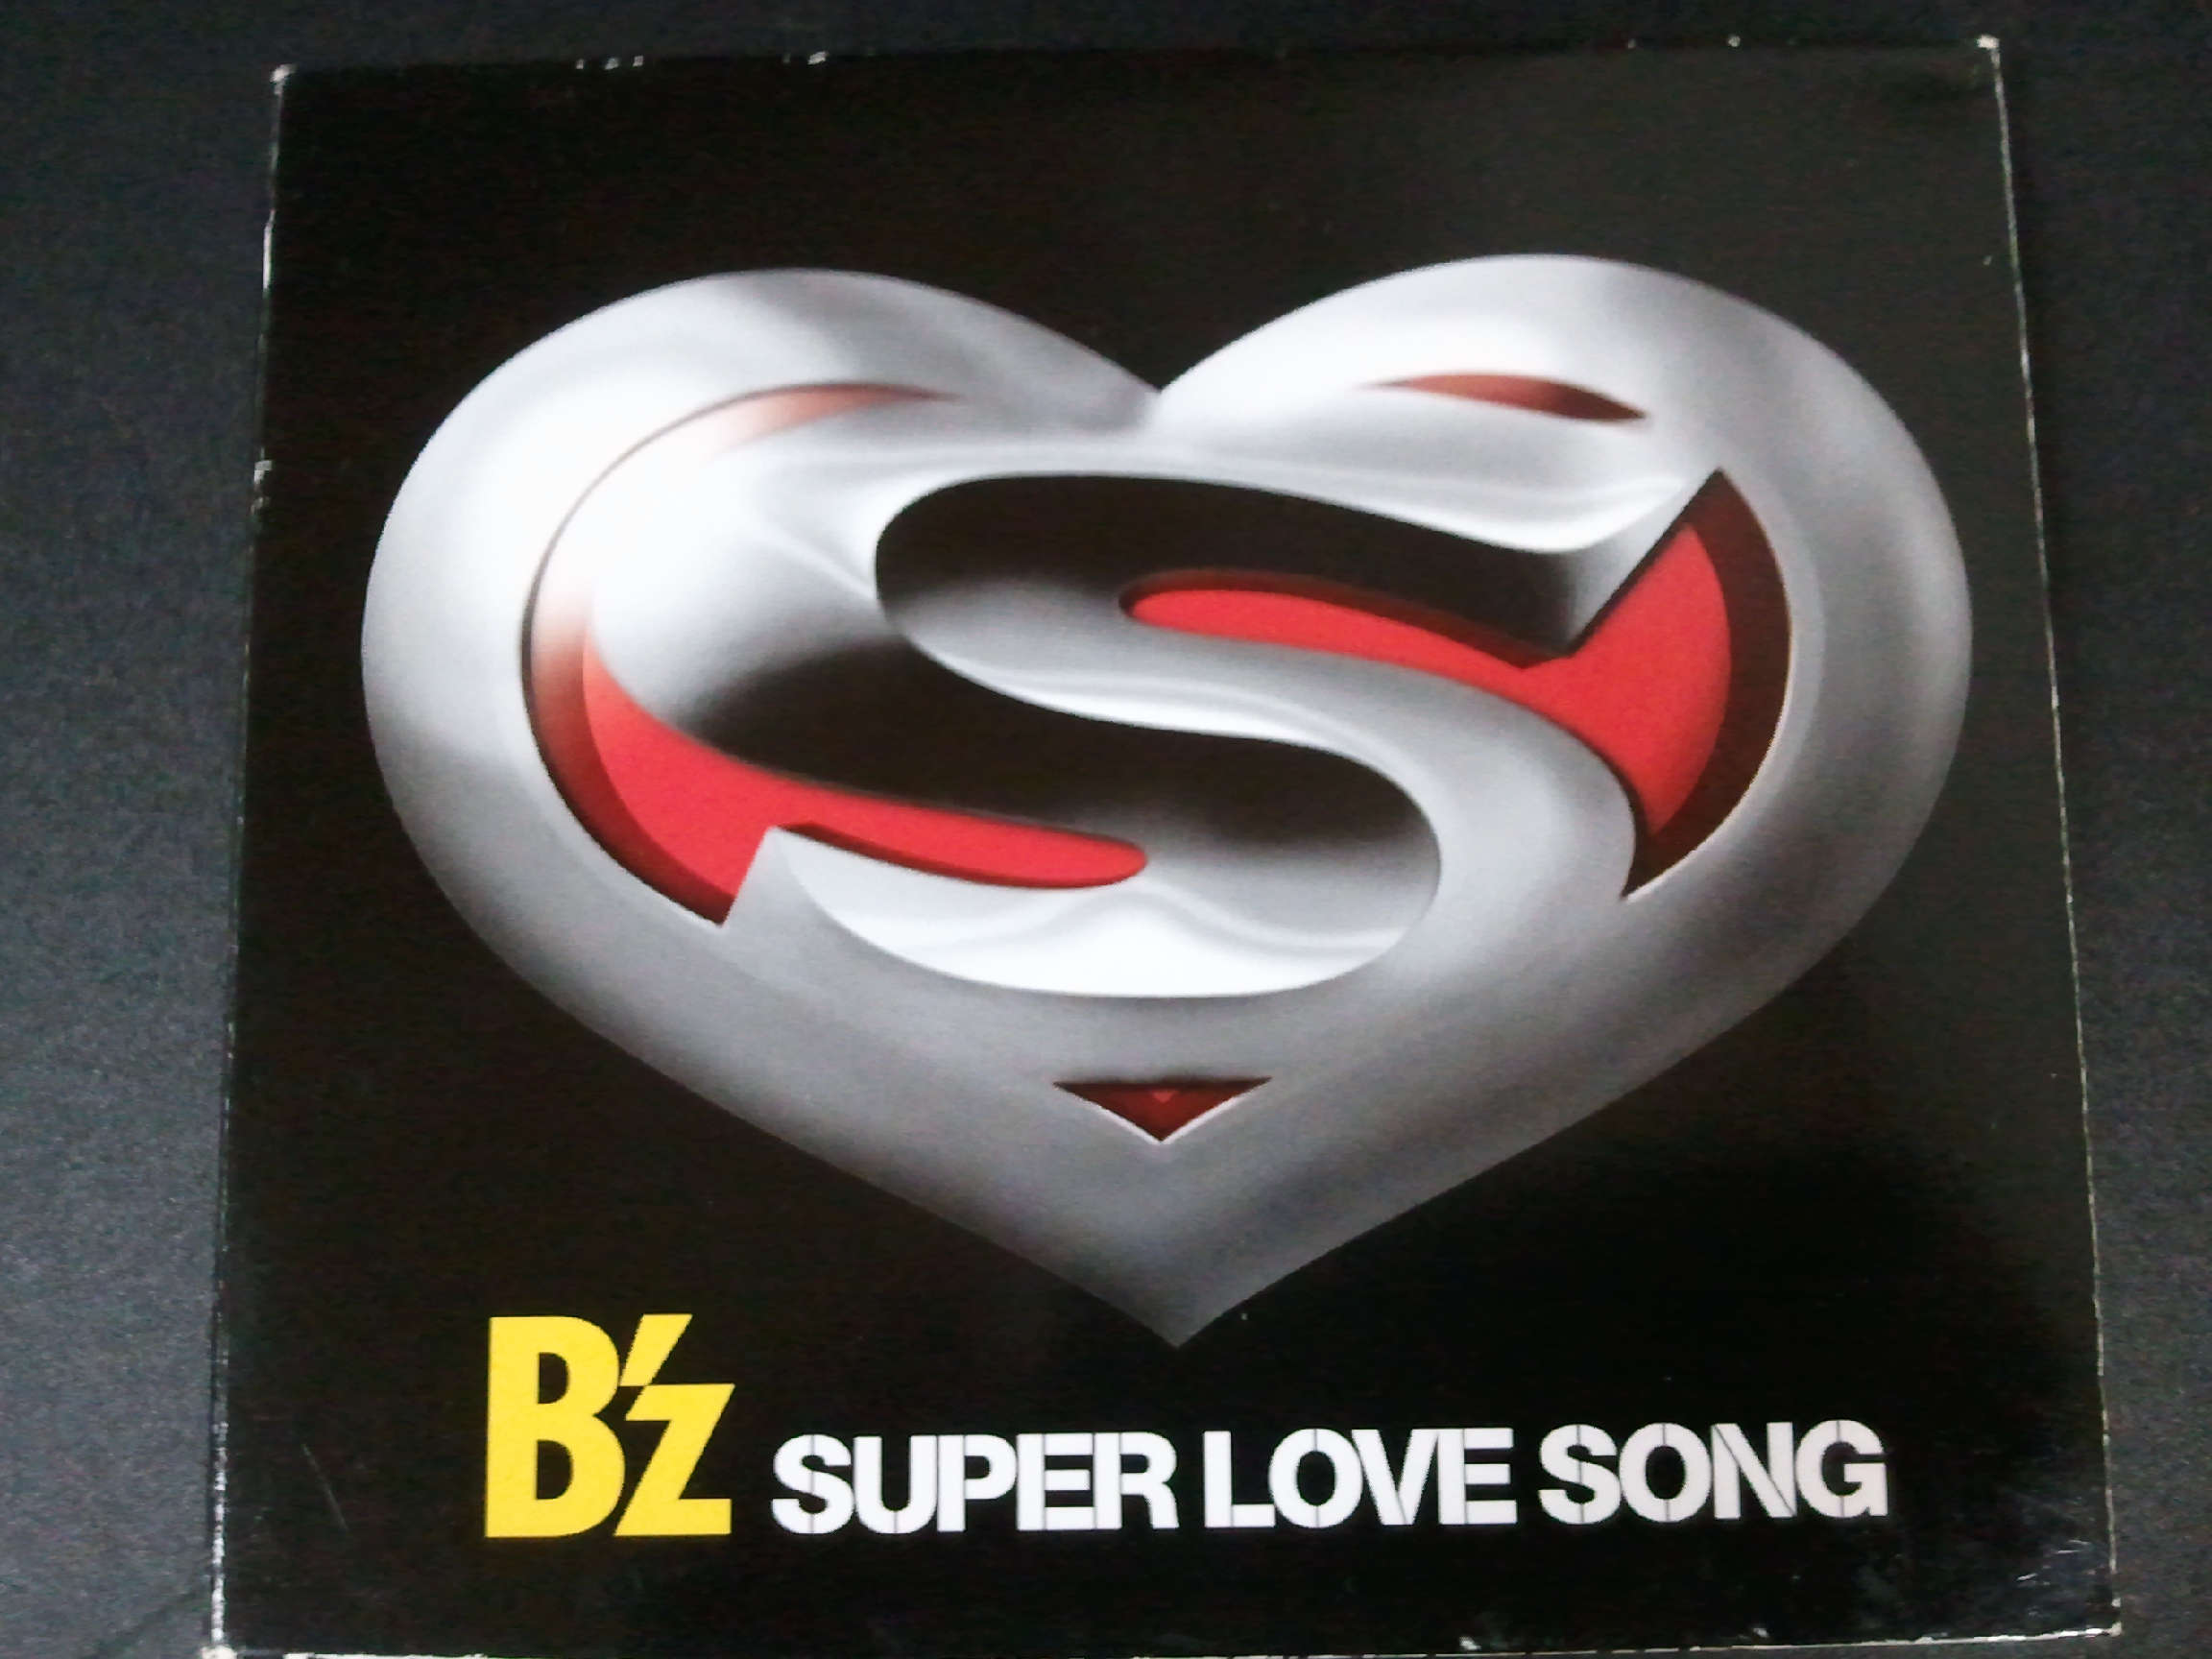 B'z Super Love Song